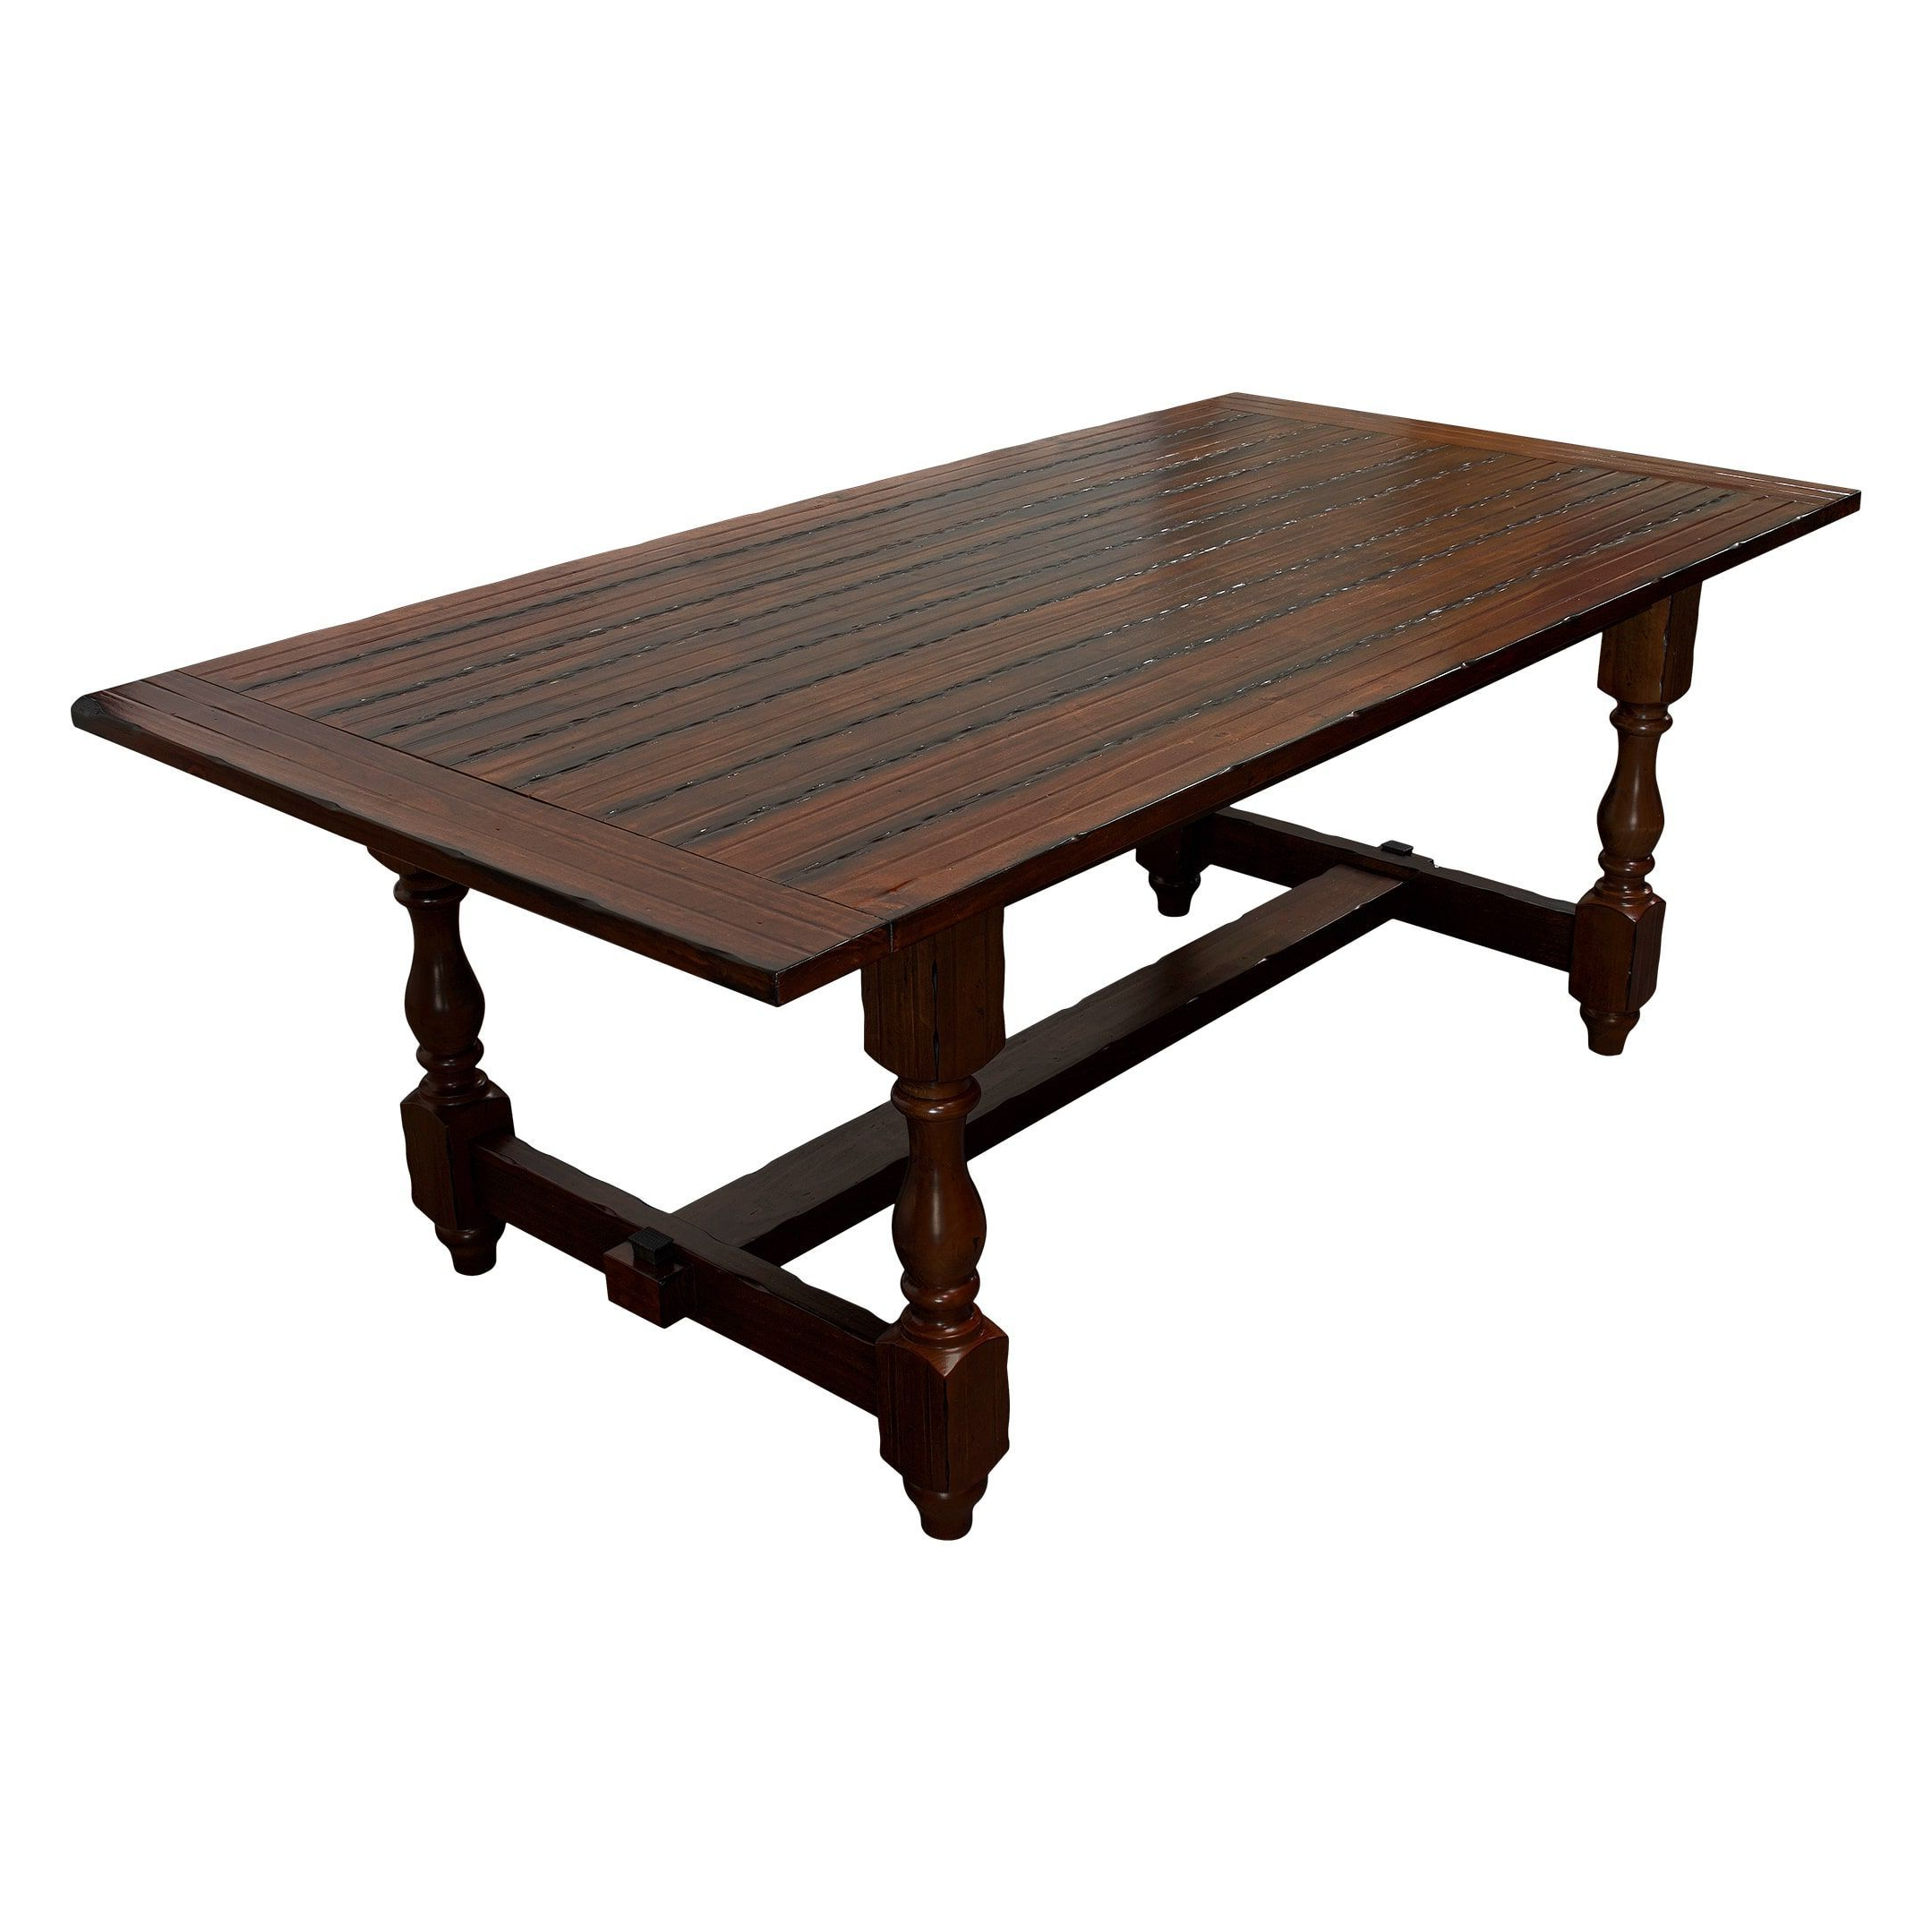 Bowry Reclaimed Wood Dining Tables in 2019 Best Master Furniture H01 Rectangular Dining Table (H01